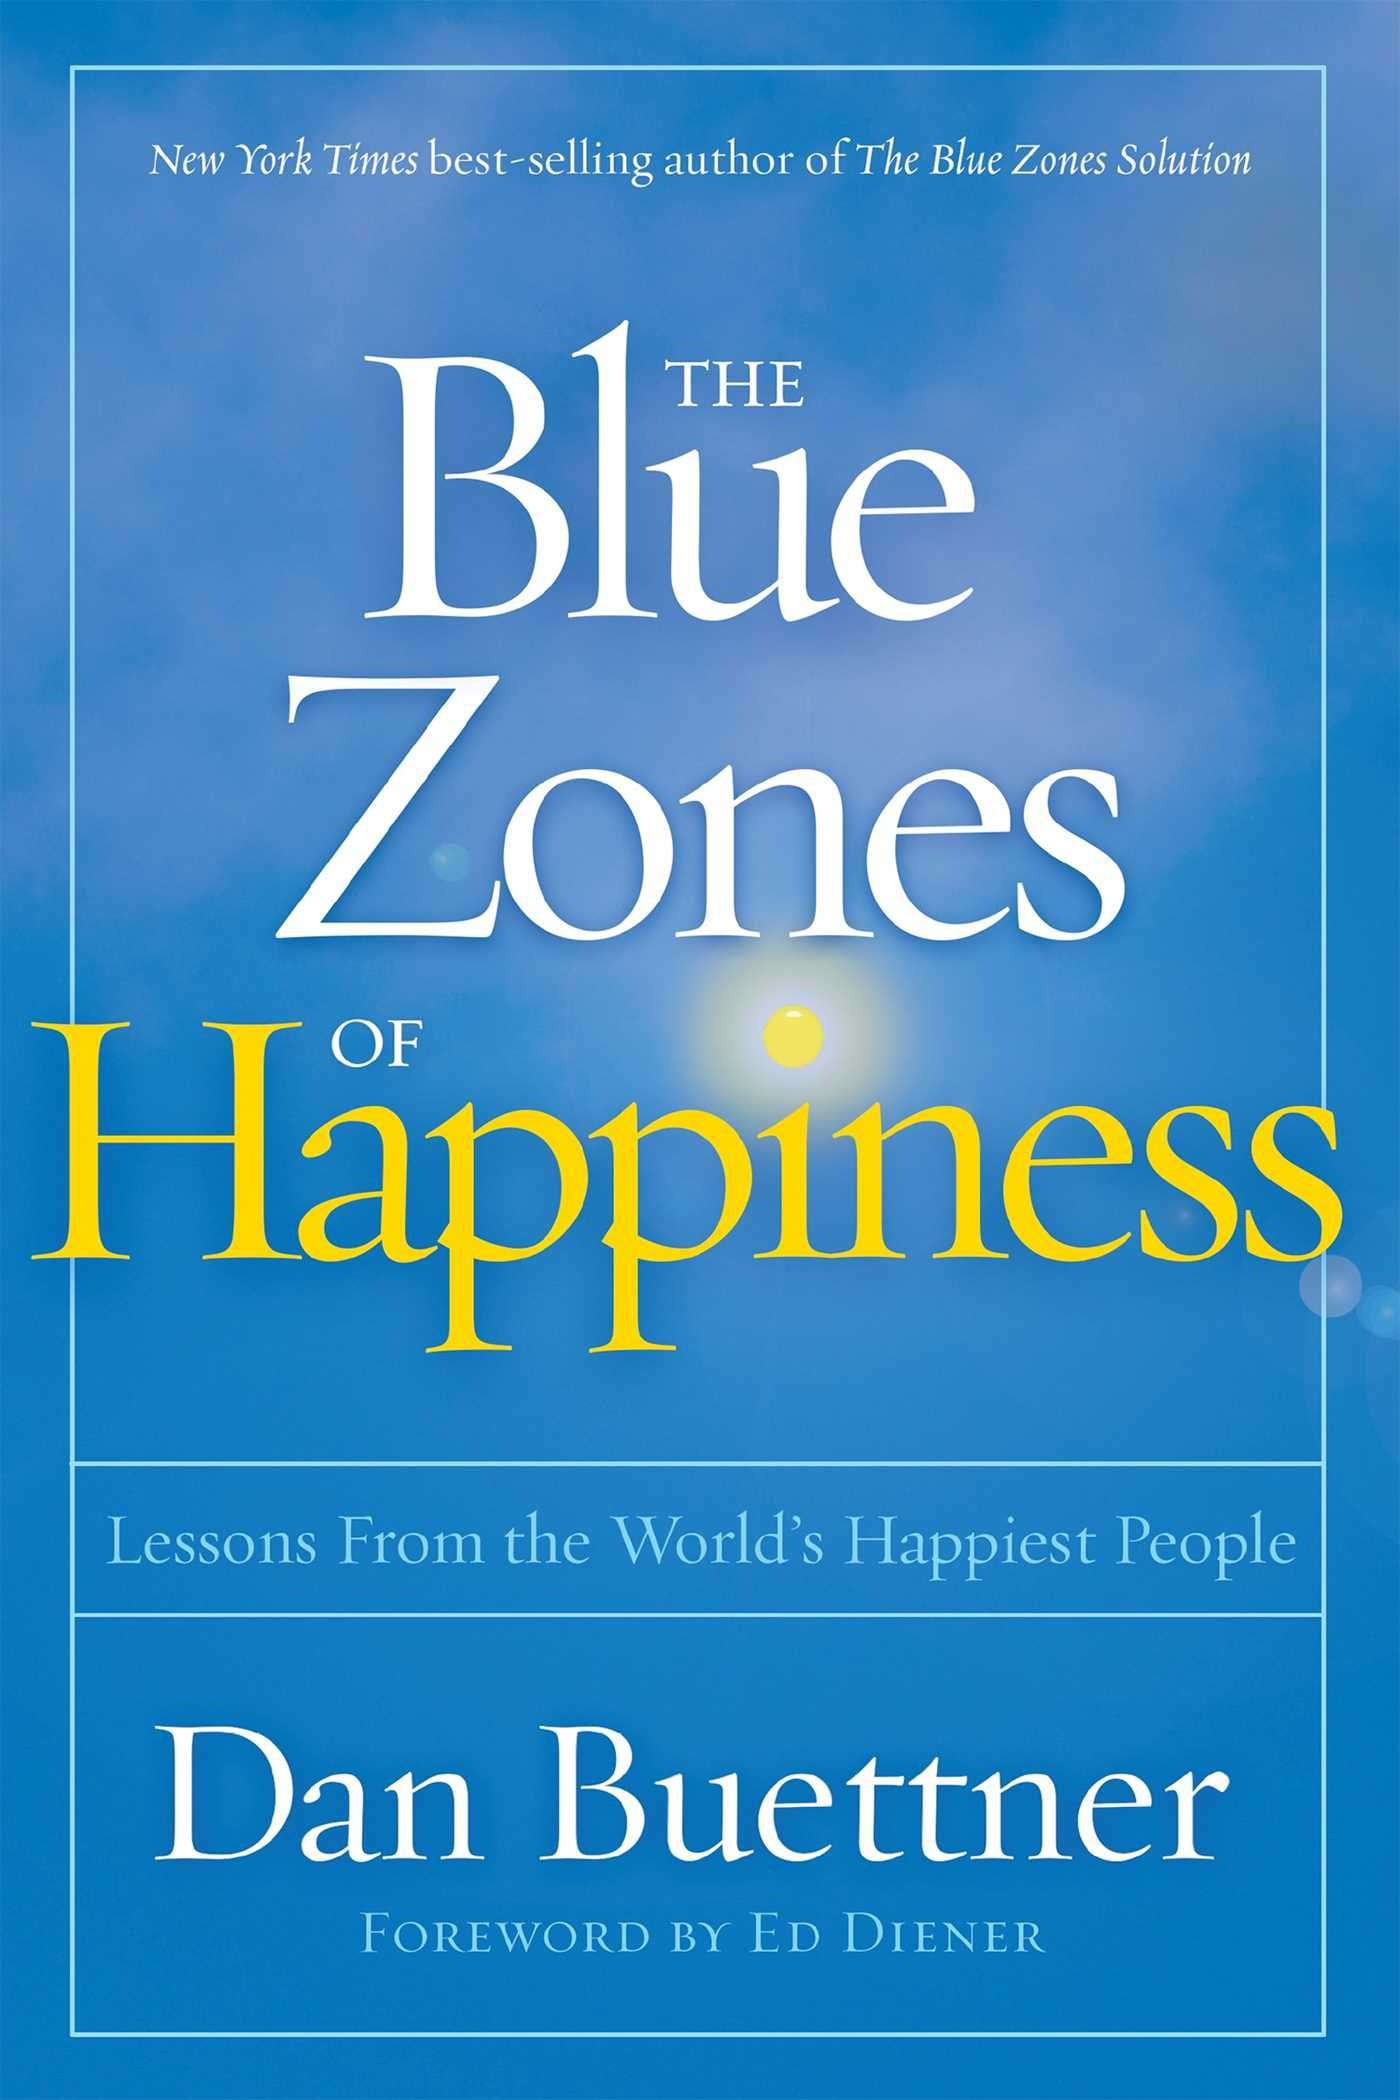 Sobrecubierta The Blue Zones of Happiness de Dan Buettner